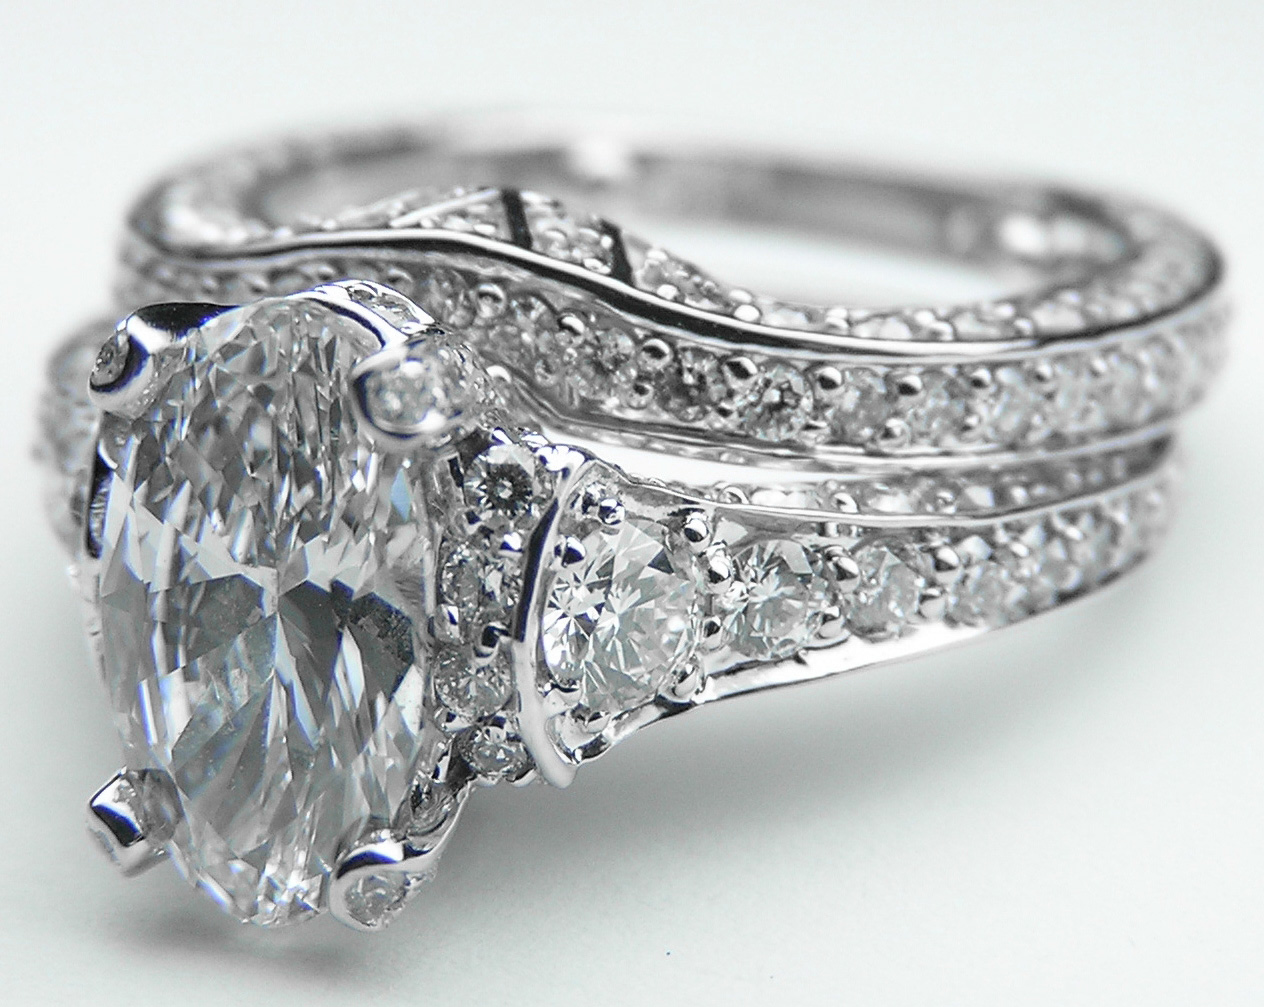 Engagement Ring Large Oval Diamond Cathedral Graduated Pave Bridal Set In 14K White Gold